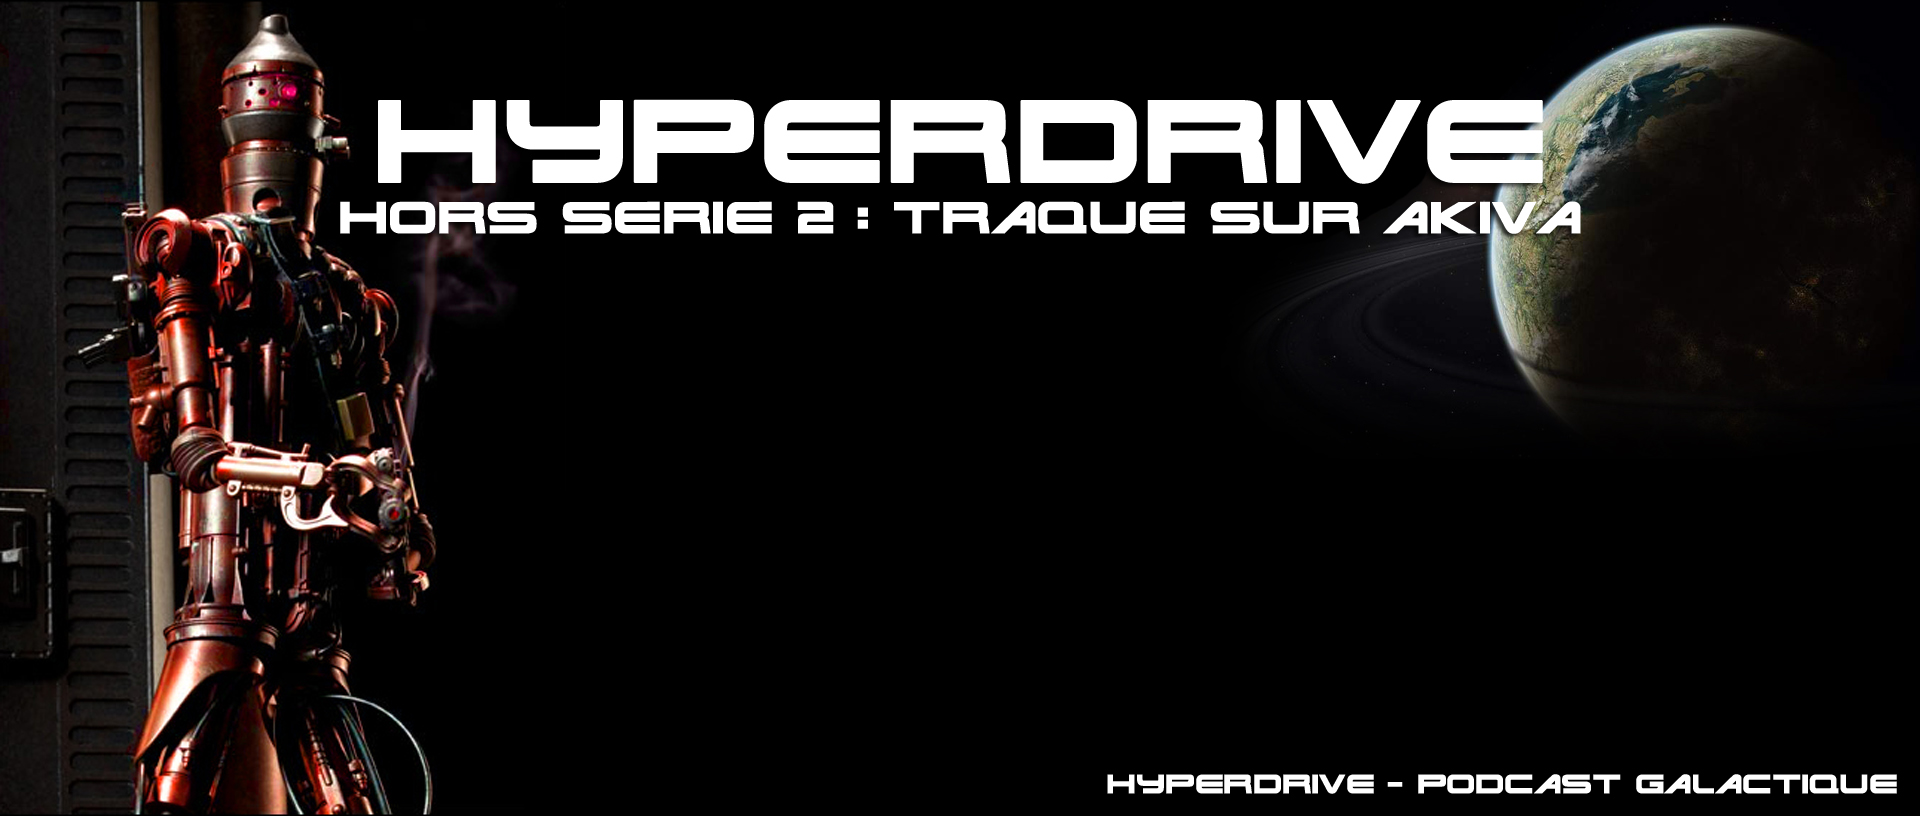 HYPERDRIVE Hors-série 2 - Fiction audio starwars